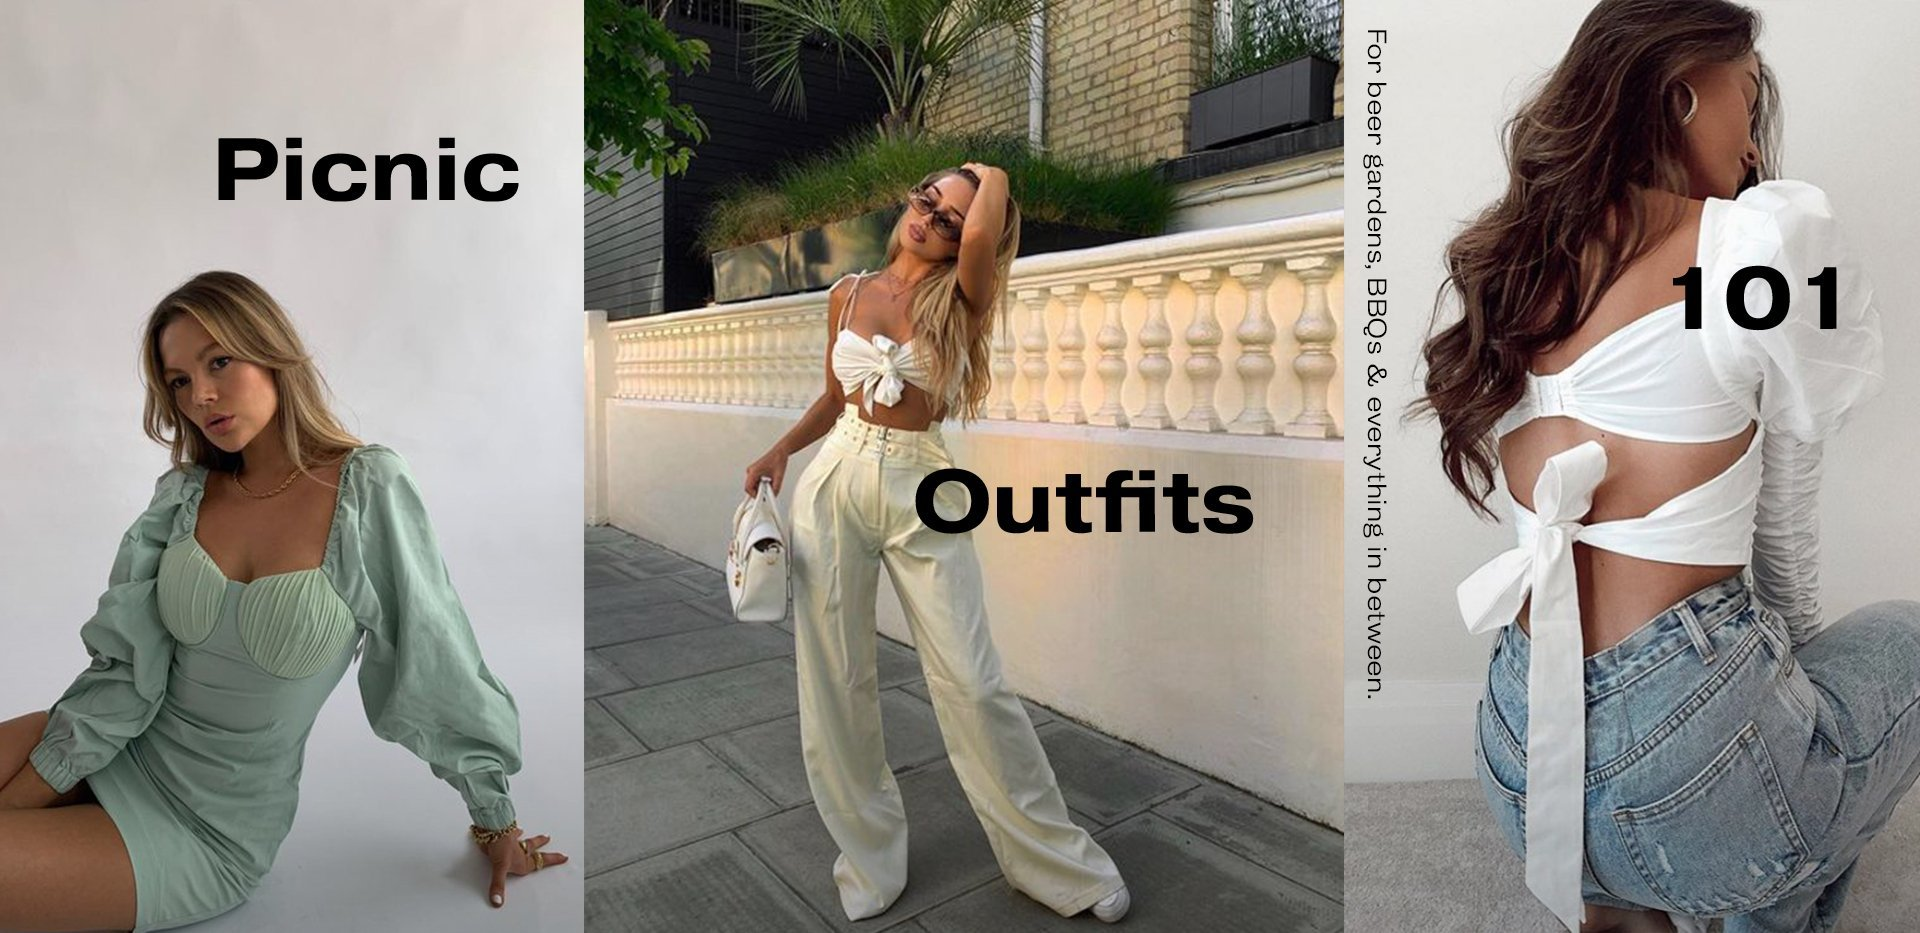 Picnic Outfits